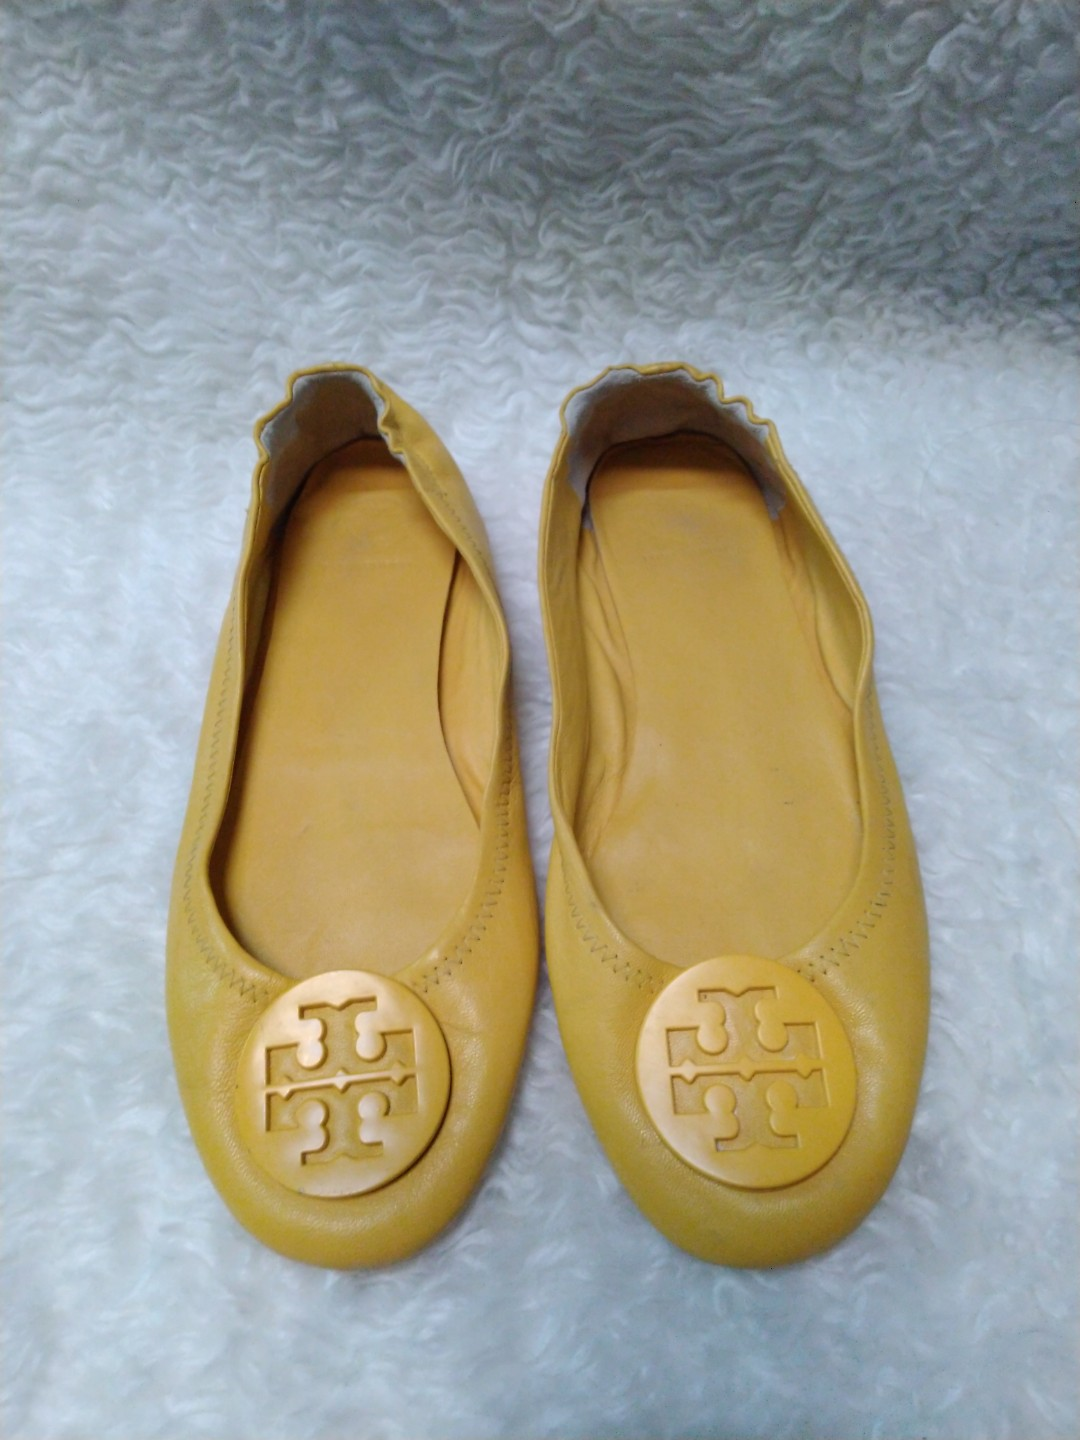 f26ad63bbba805 Authentic tory burch size 7.5